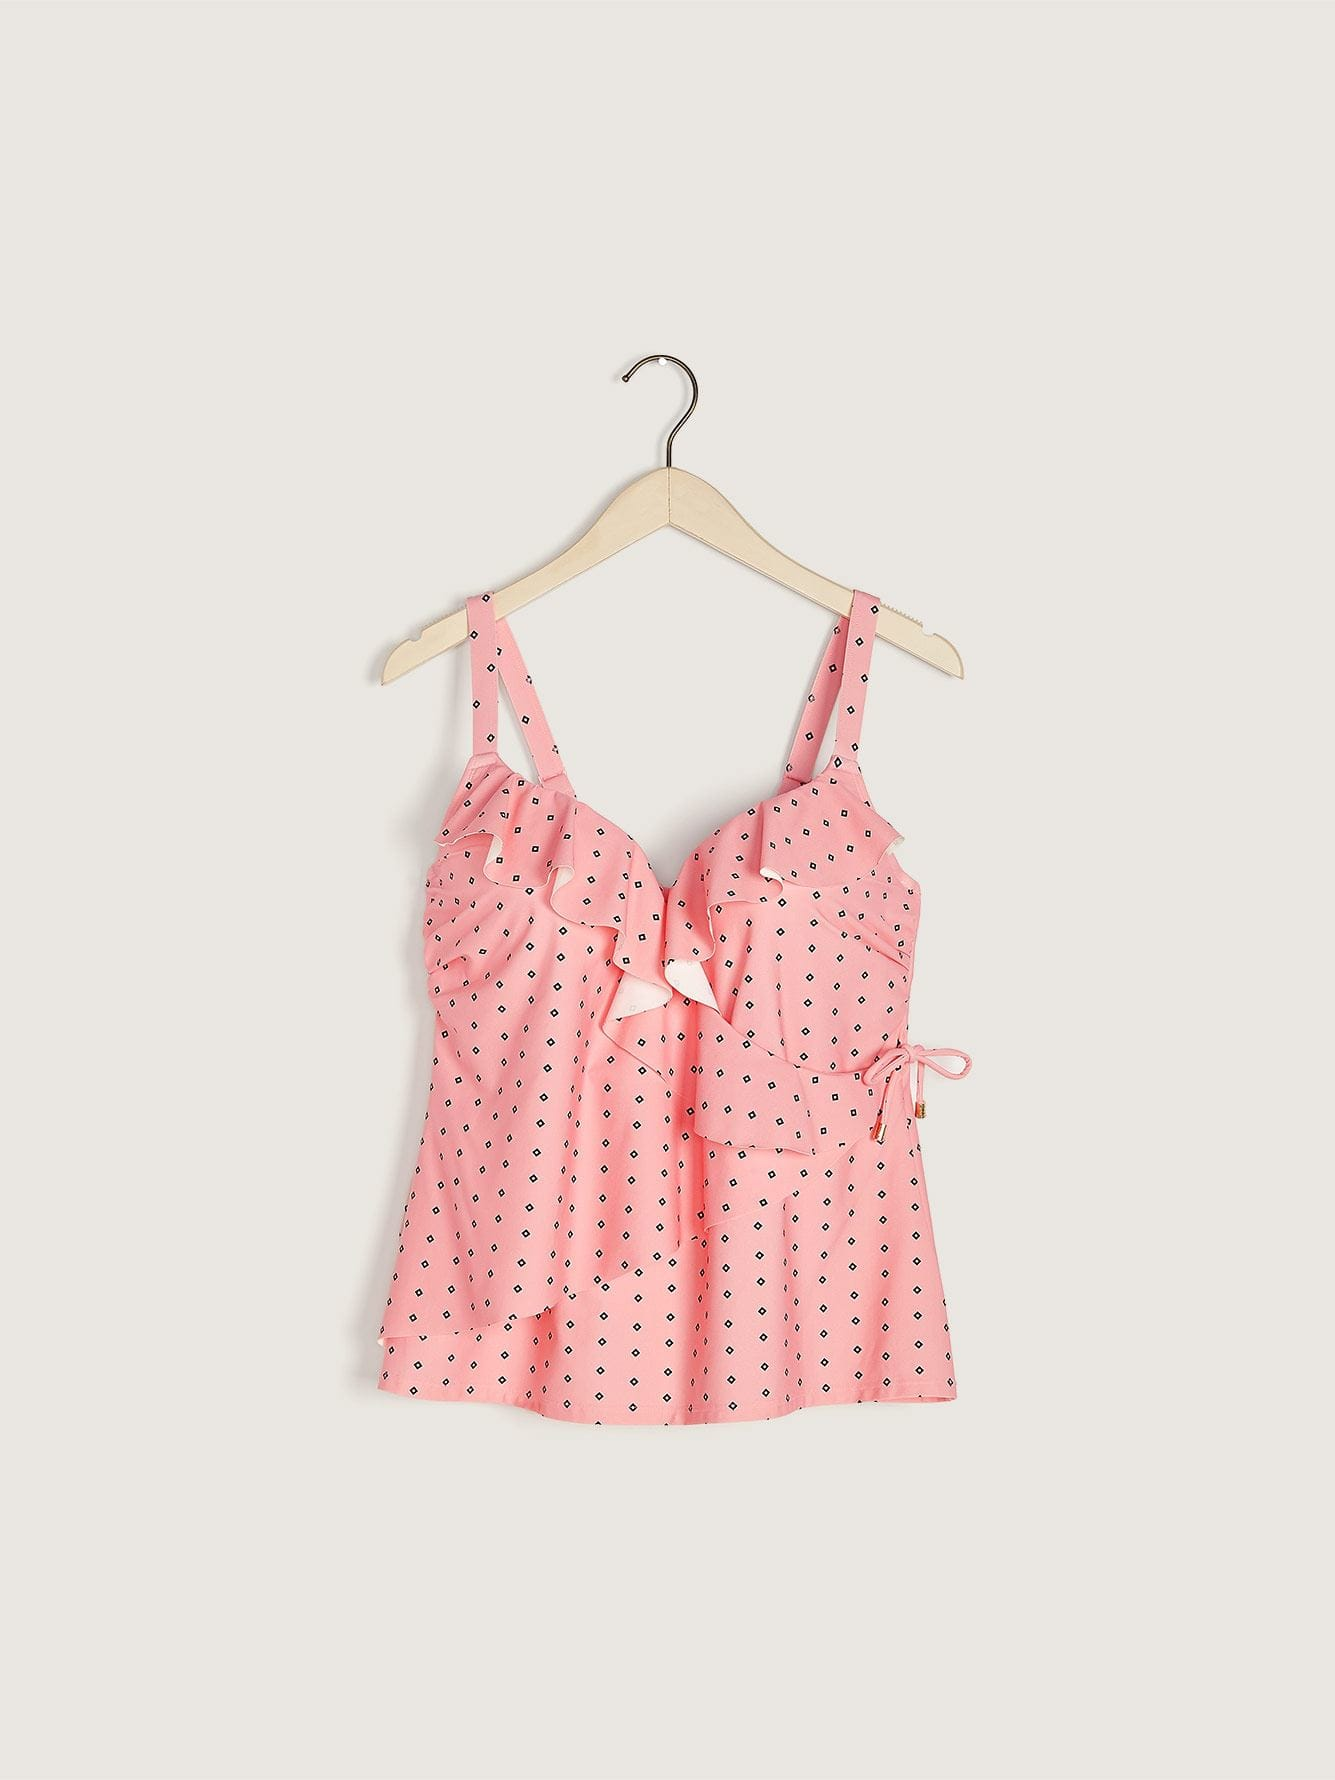 Printed Bra Fit Tankini Top with Ruffle Detail - Addition Elle